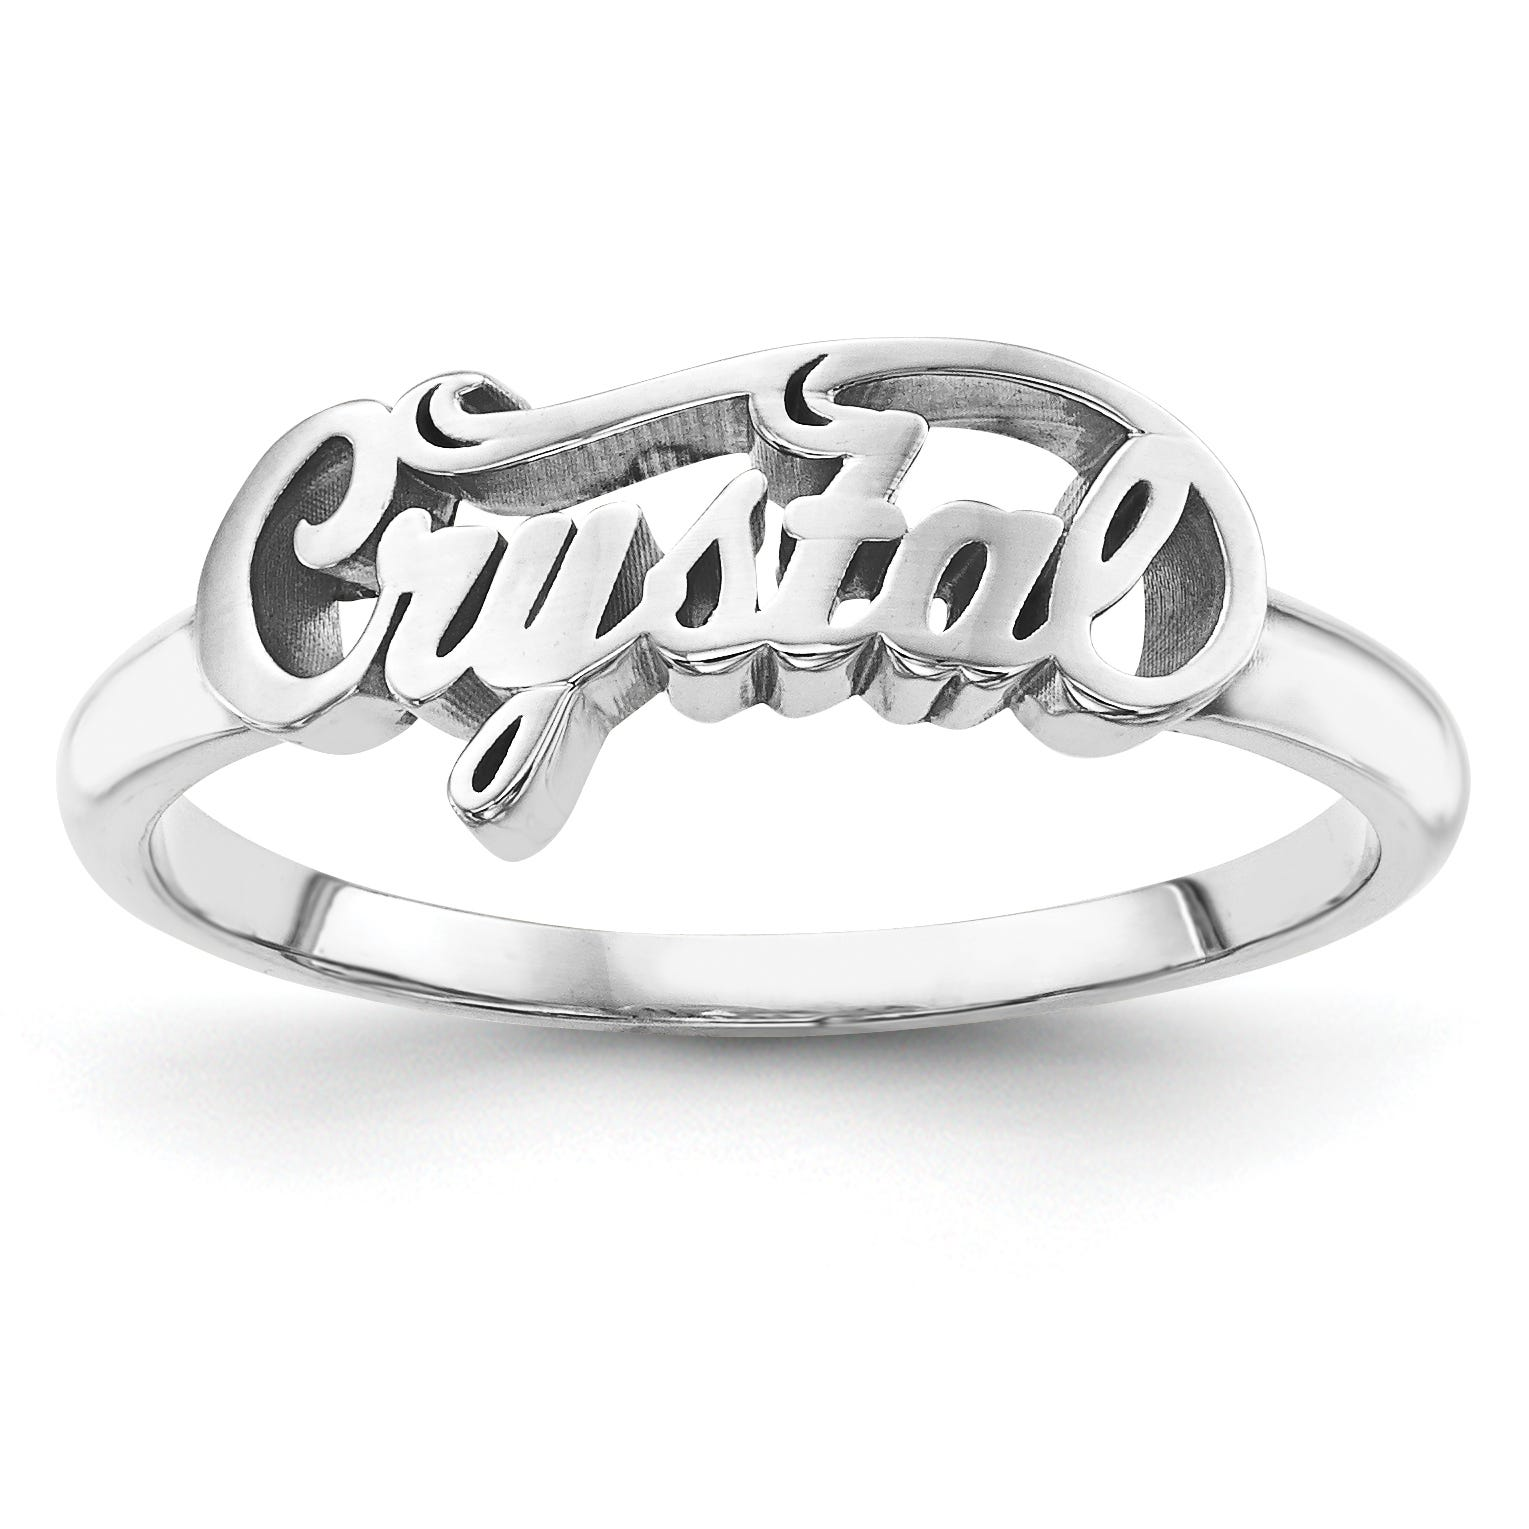 Casted High Polish Name Ring in Sterling Silver (up to 9 letters)